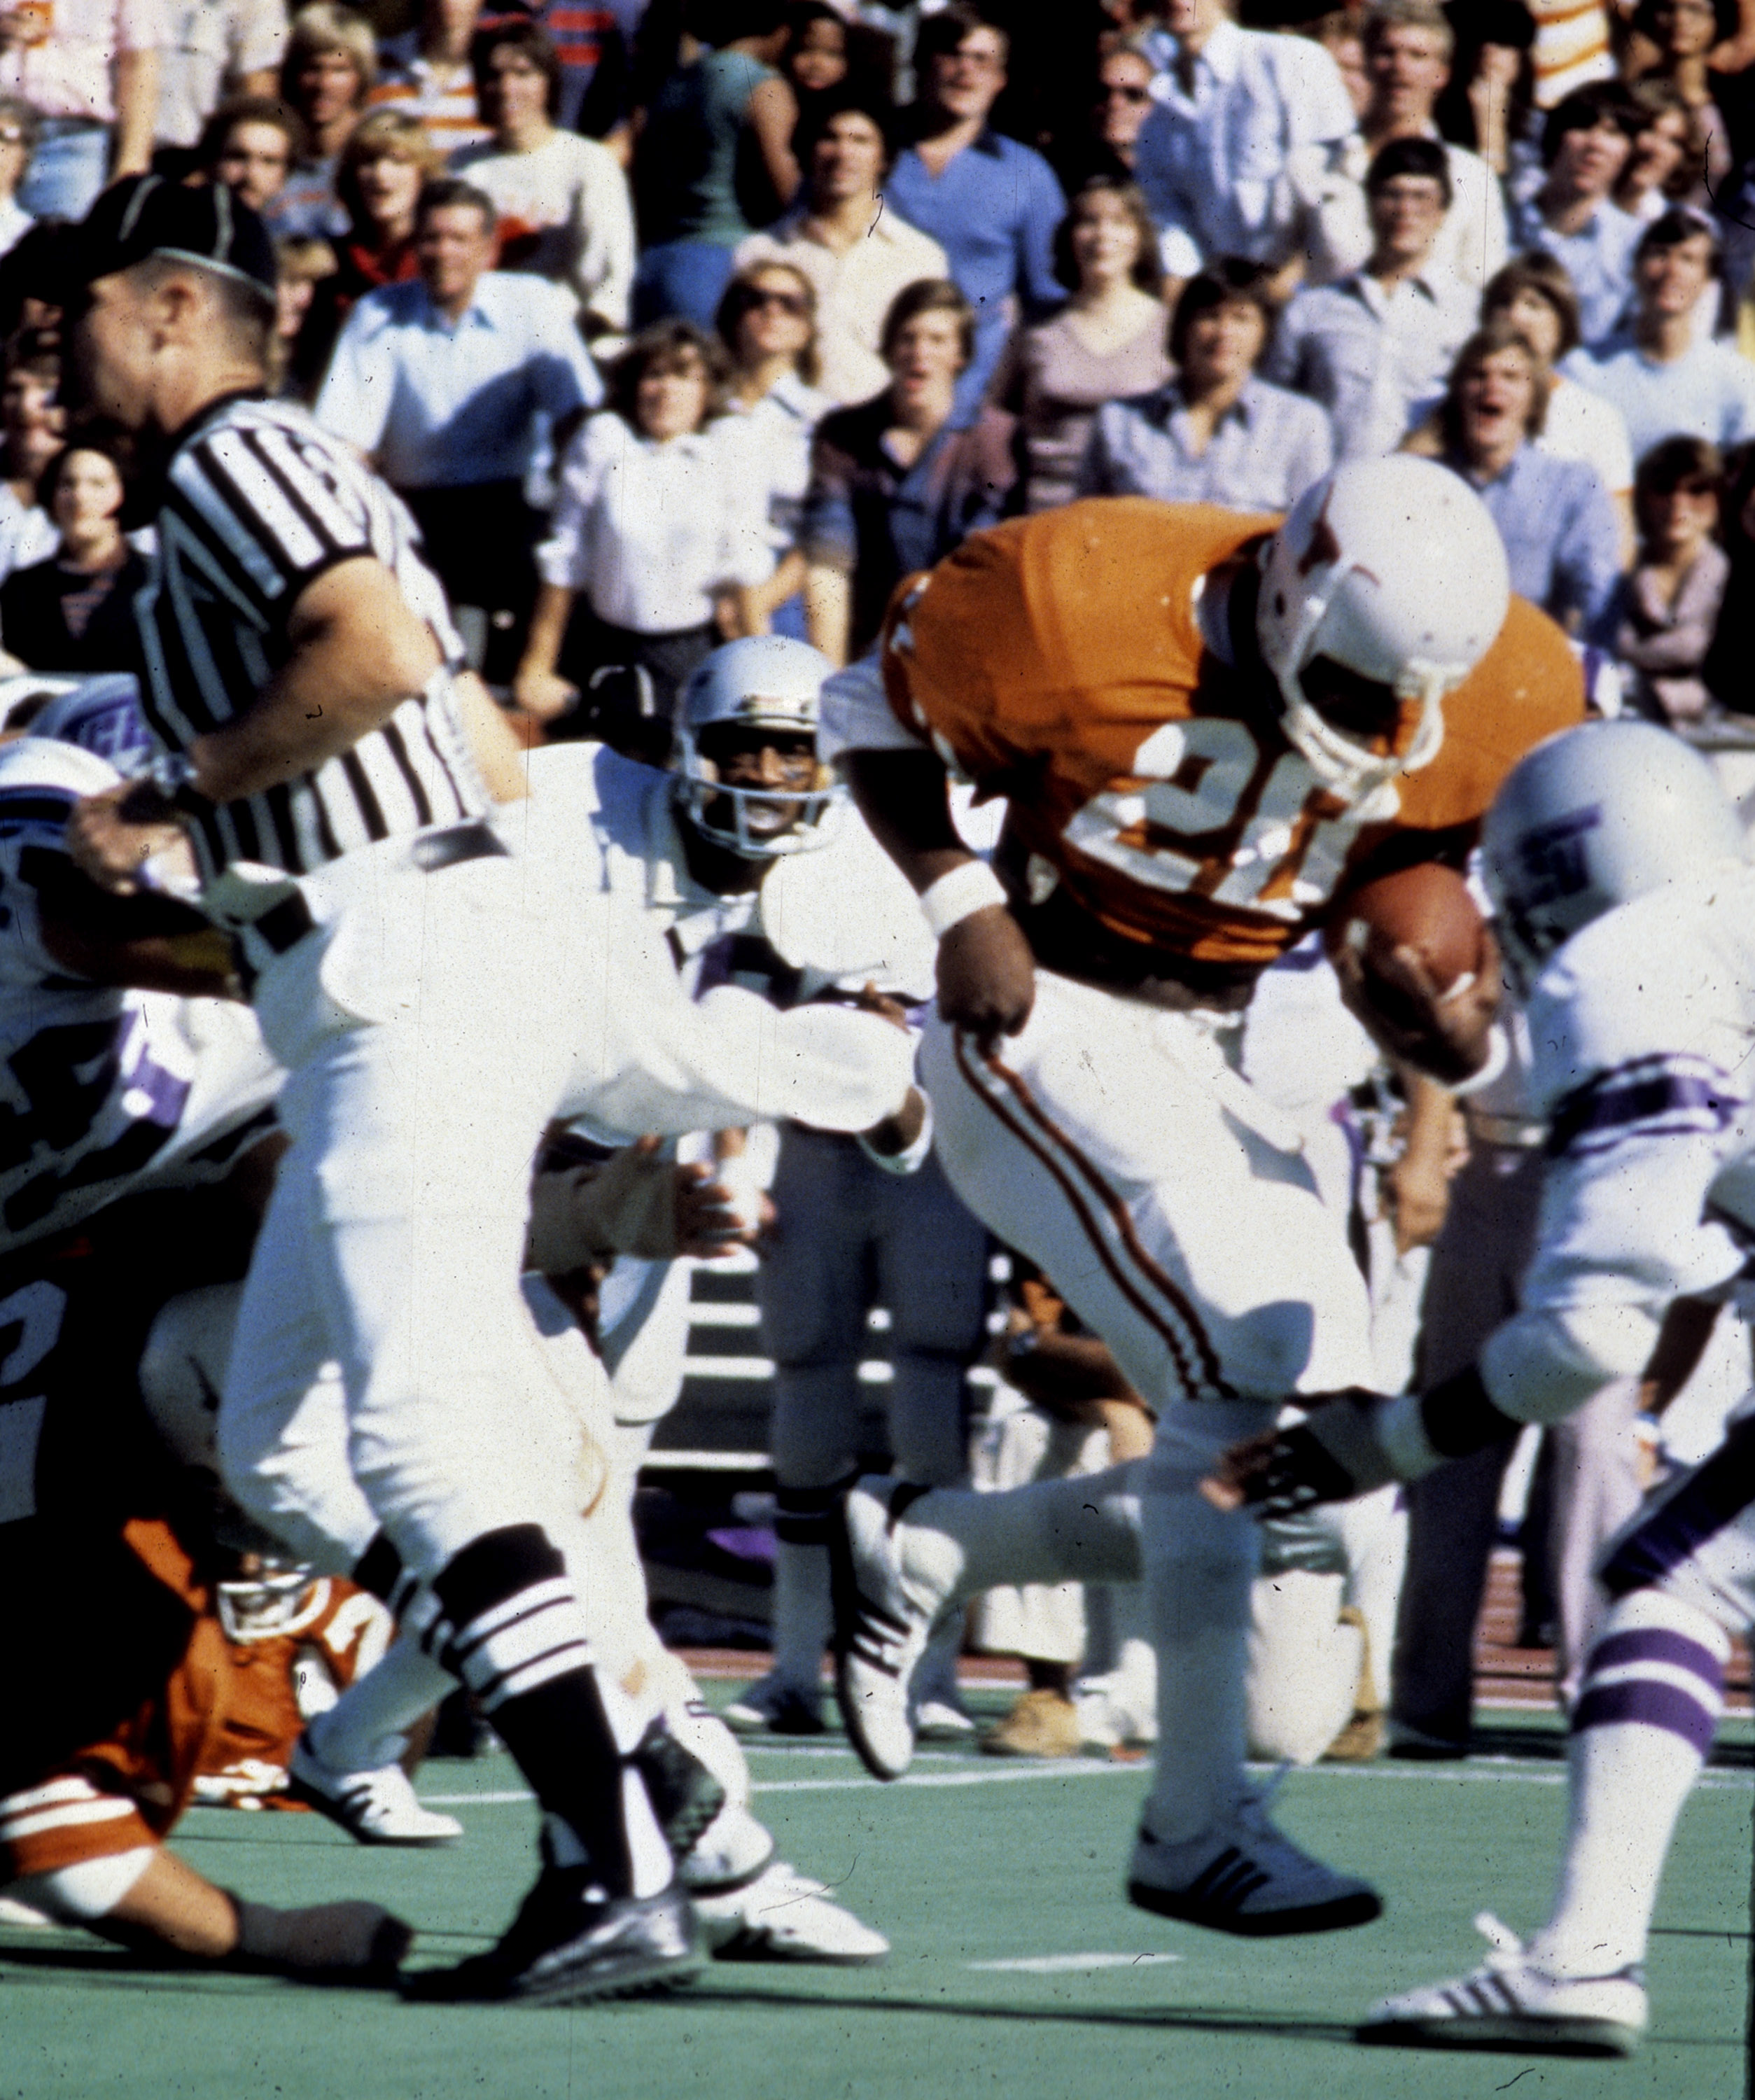 Running back Earl Campbell of the University of Texas Longhorns. Campbell was the 1977 Heisman trophy winner and was inducted into the Pro Football Hall of Fame in 1991. (Photo by University of Texas/Getty Images)